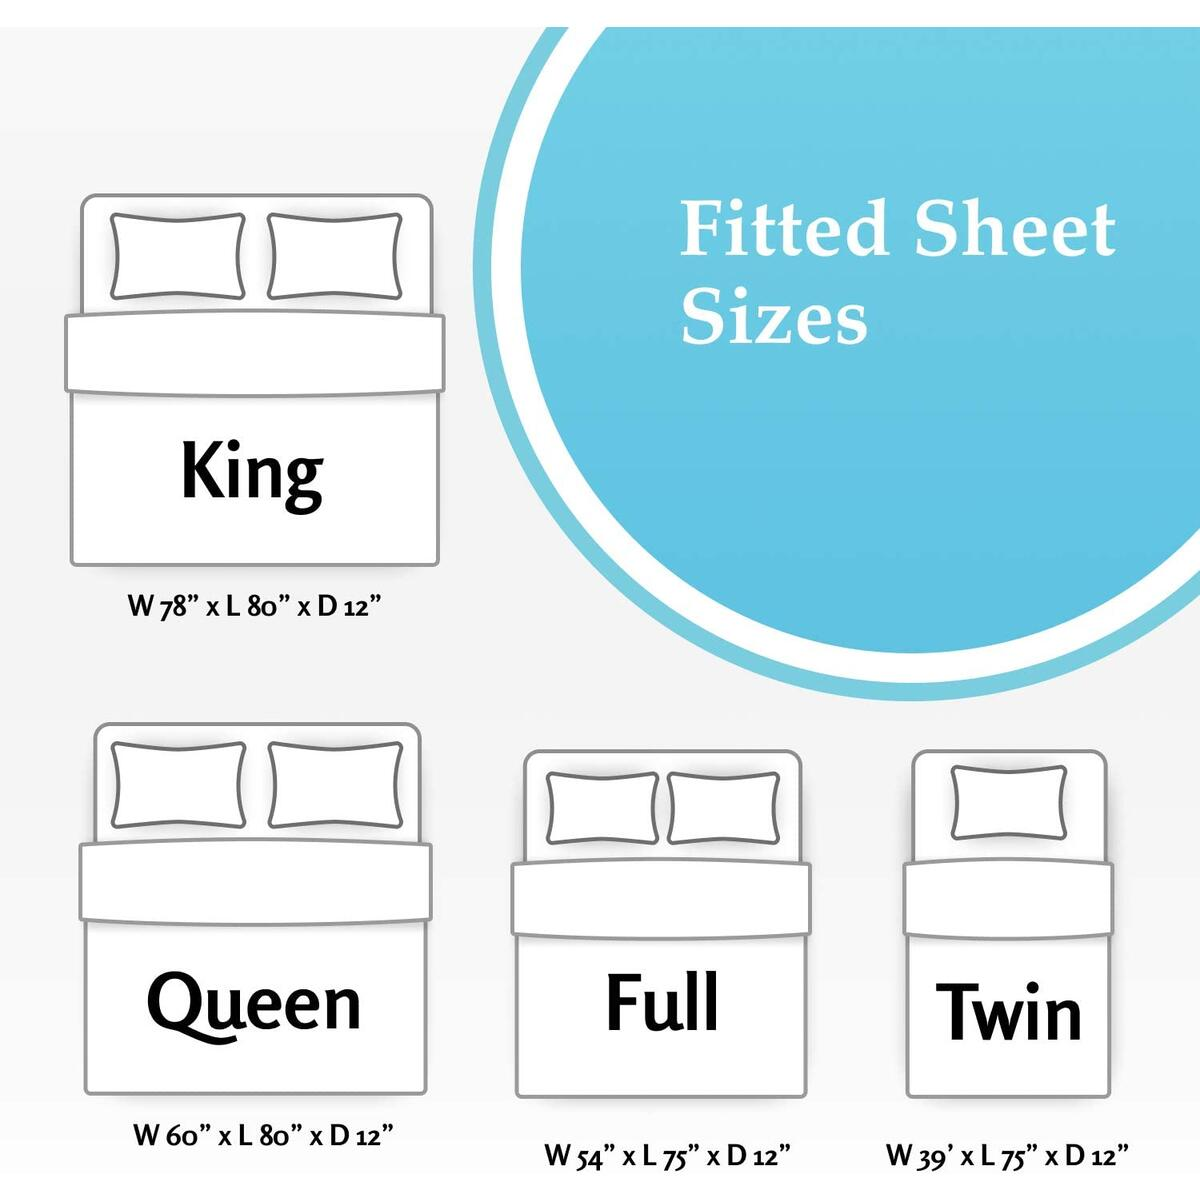 Grey King Fitted Sheet Only, Deep Pocket | Extremely Soft Brushed Microfiber Blend - 360 Elastic Band Bottom Keeps Sheet Secure Even in Heavy Movement | Wrinkle, Shrinking & Color Fade Resistant